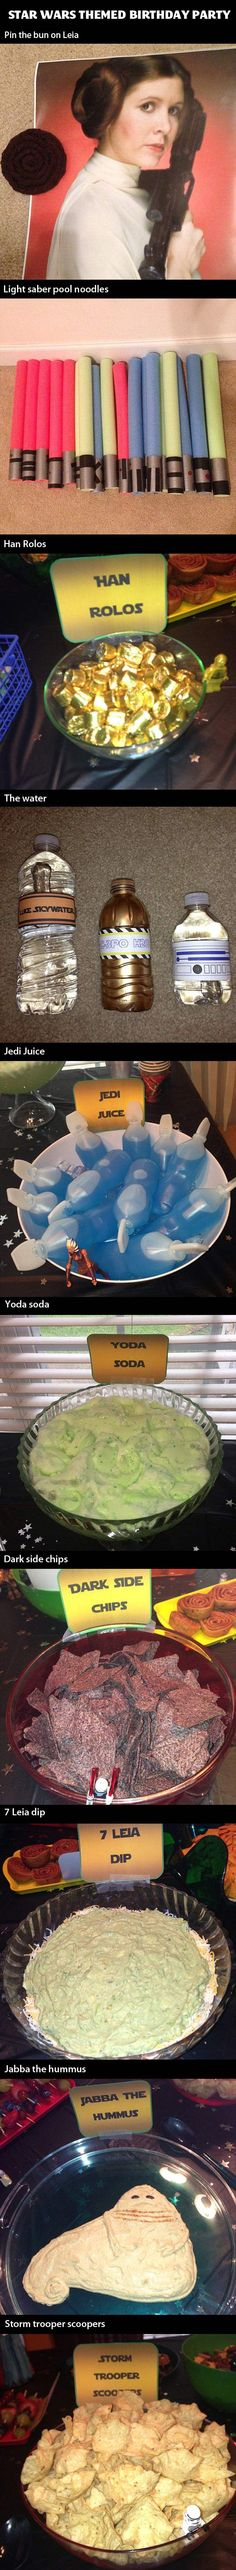 Star Wars themed birthday party… that is totally going to happen